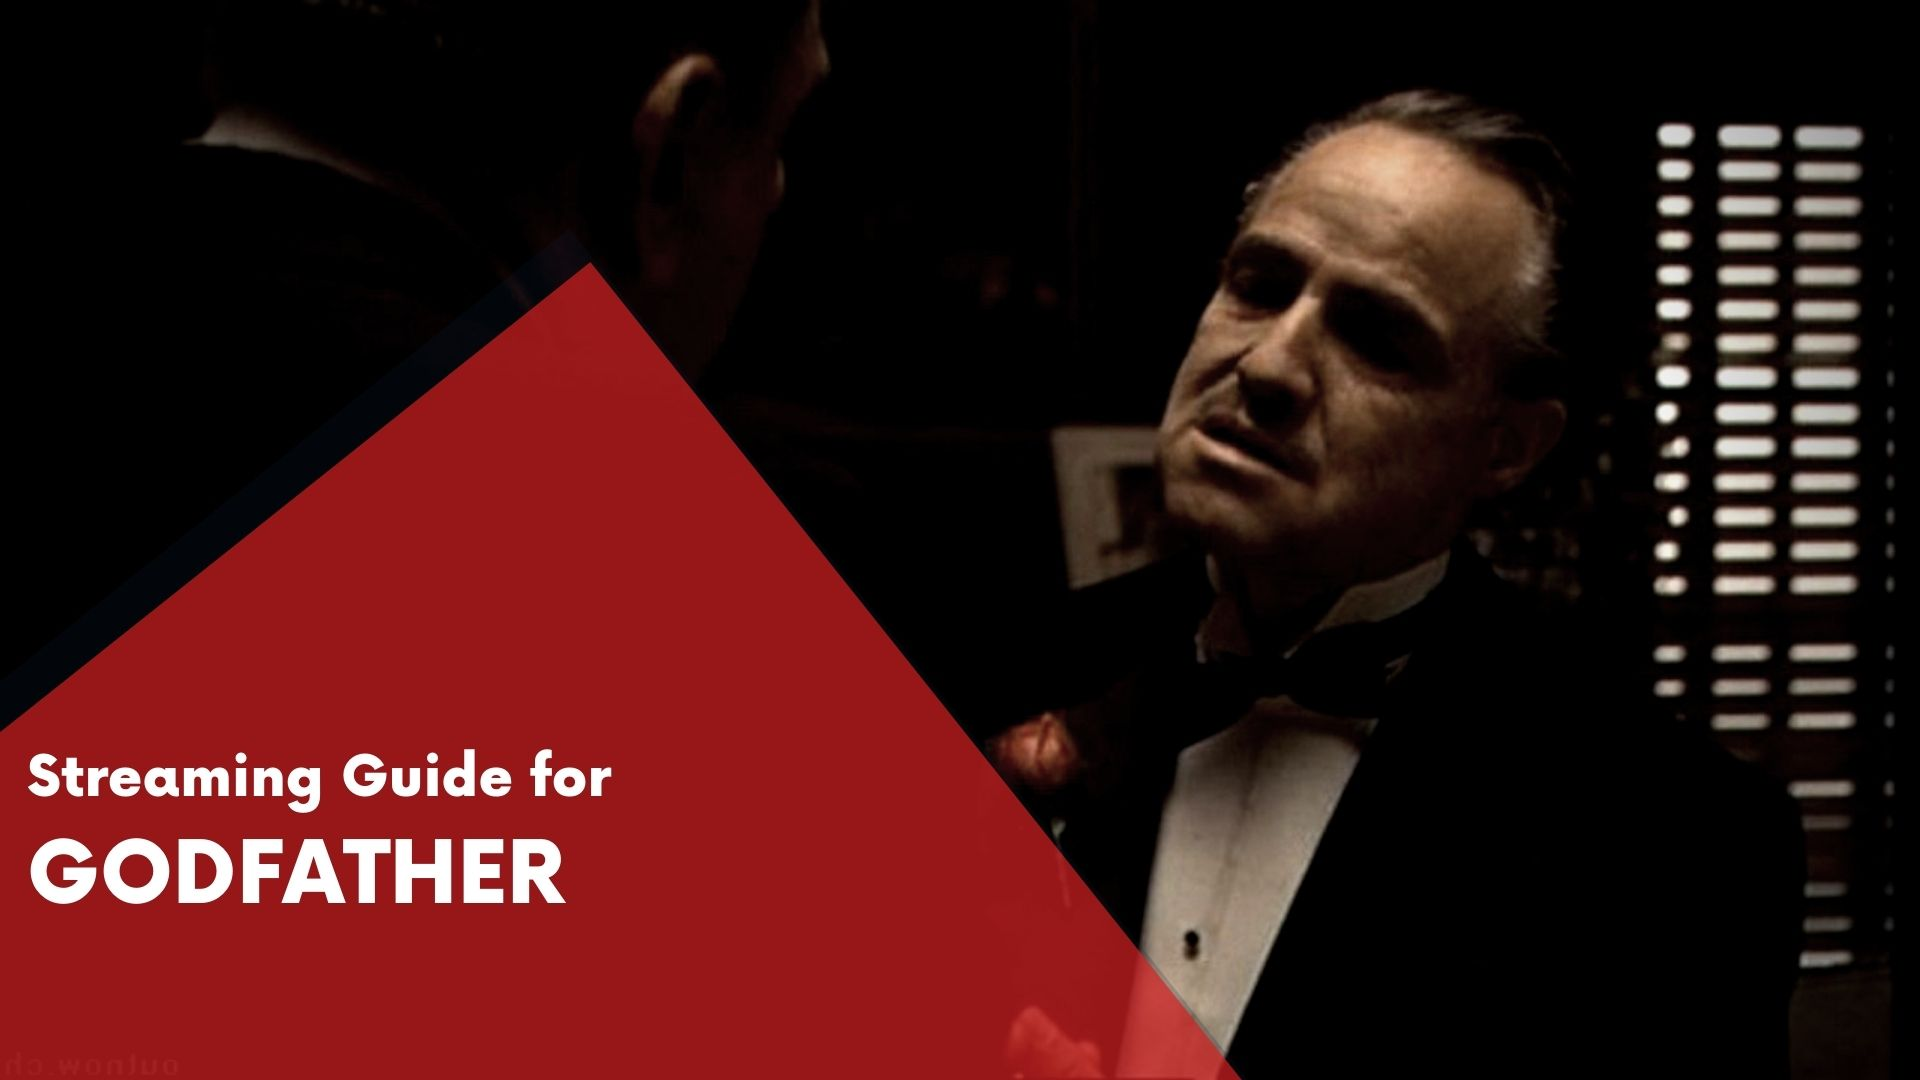 Answering if Godfather can be watched online on Hulu